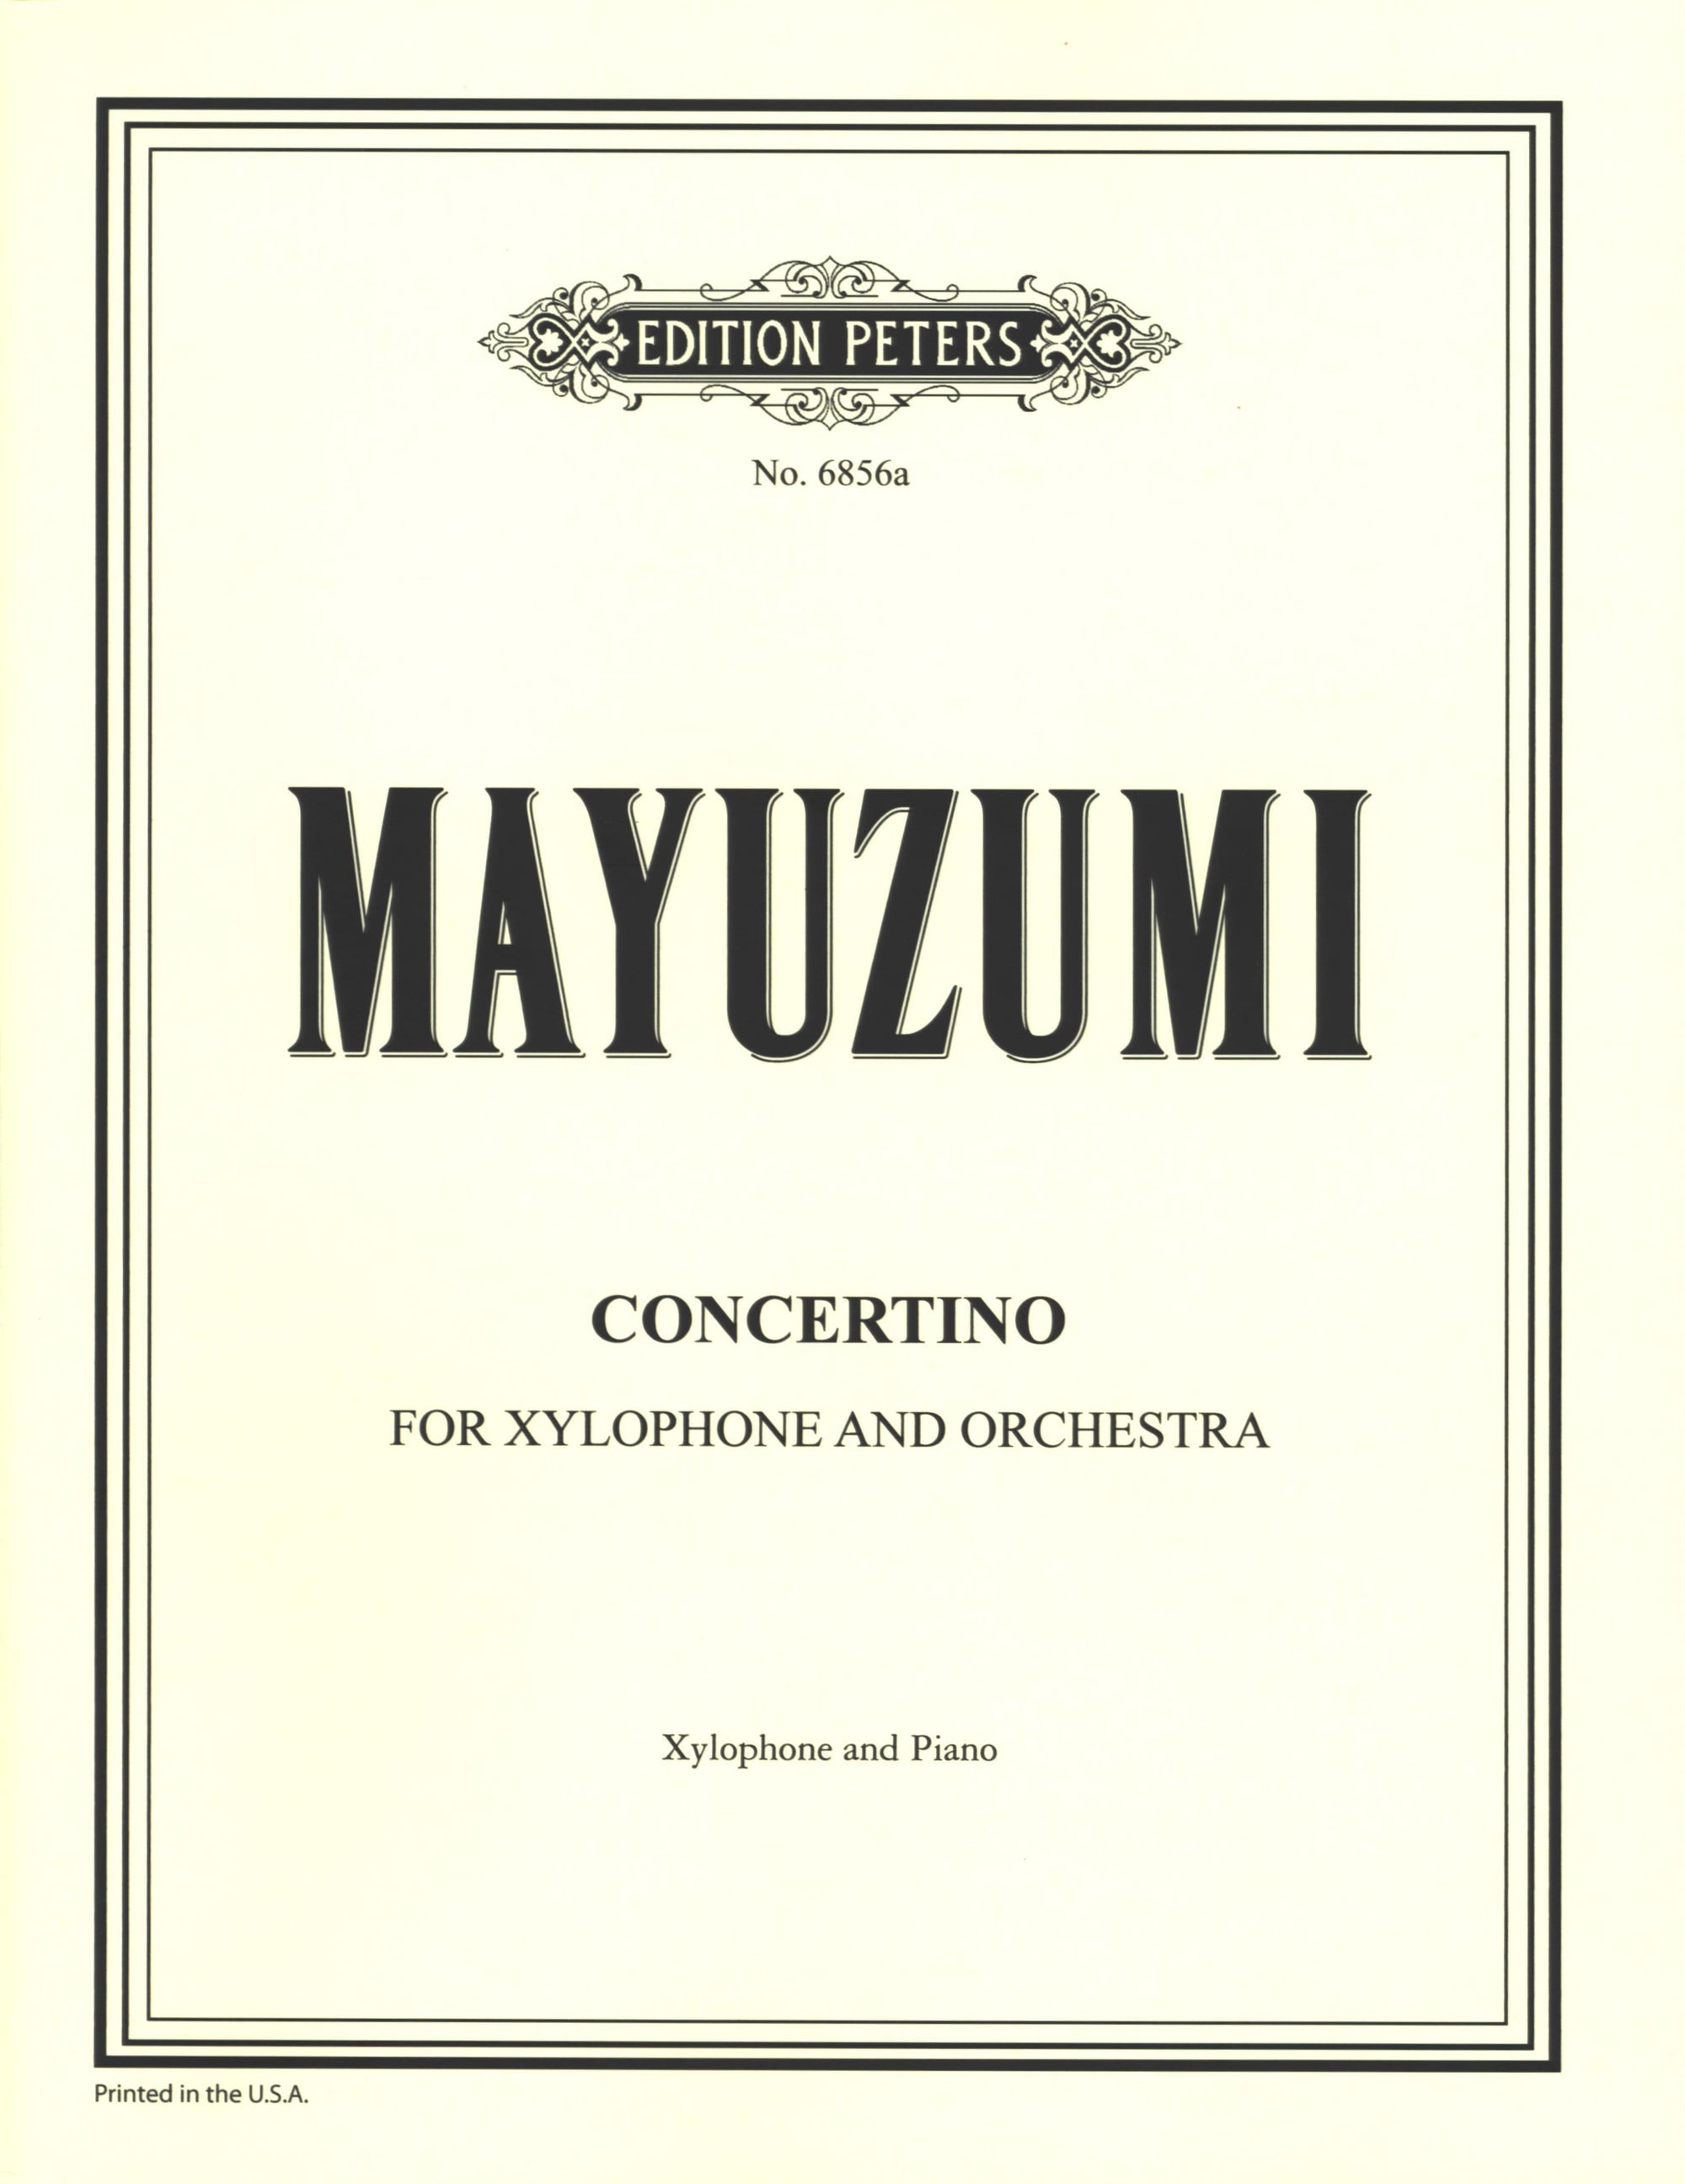 Mayuzumi: Concertino for Xylophone and Orchestra